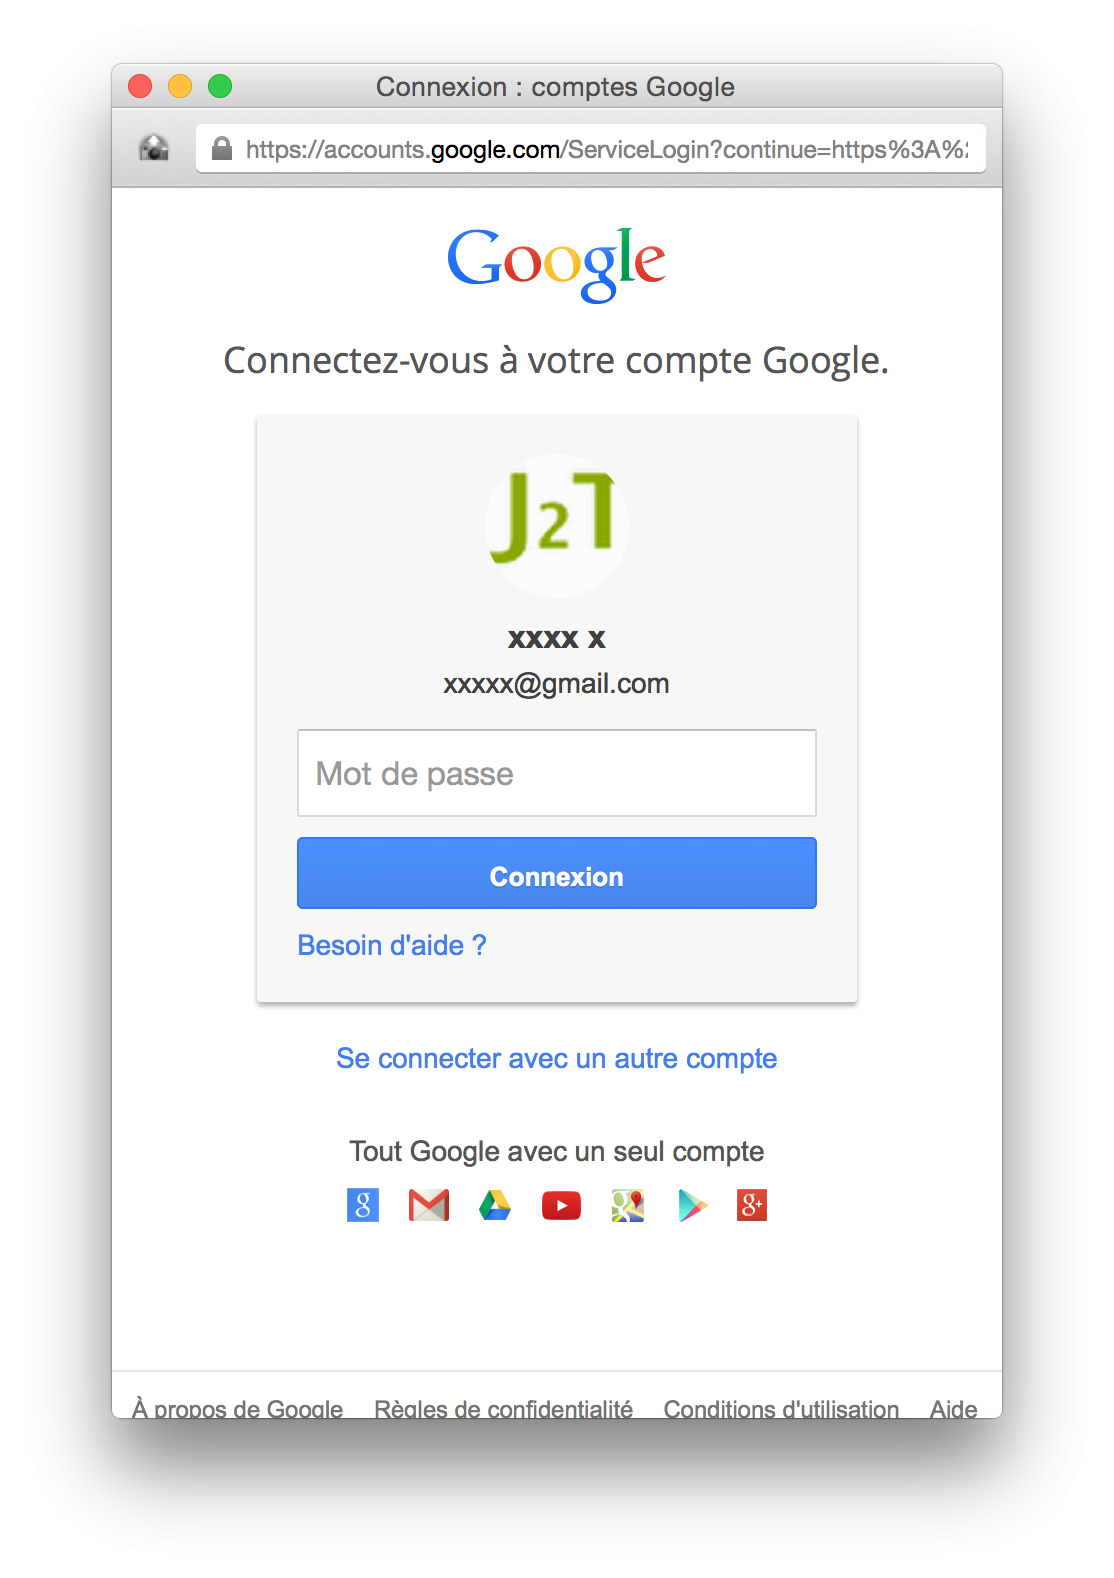 Google Plus sigin in window